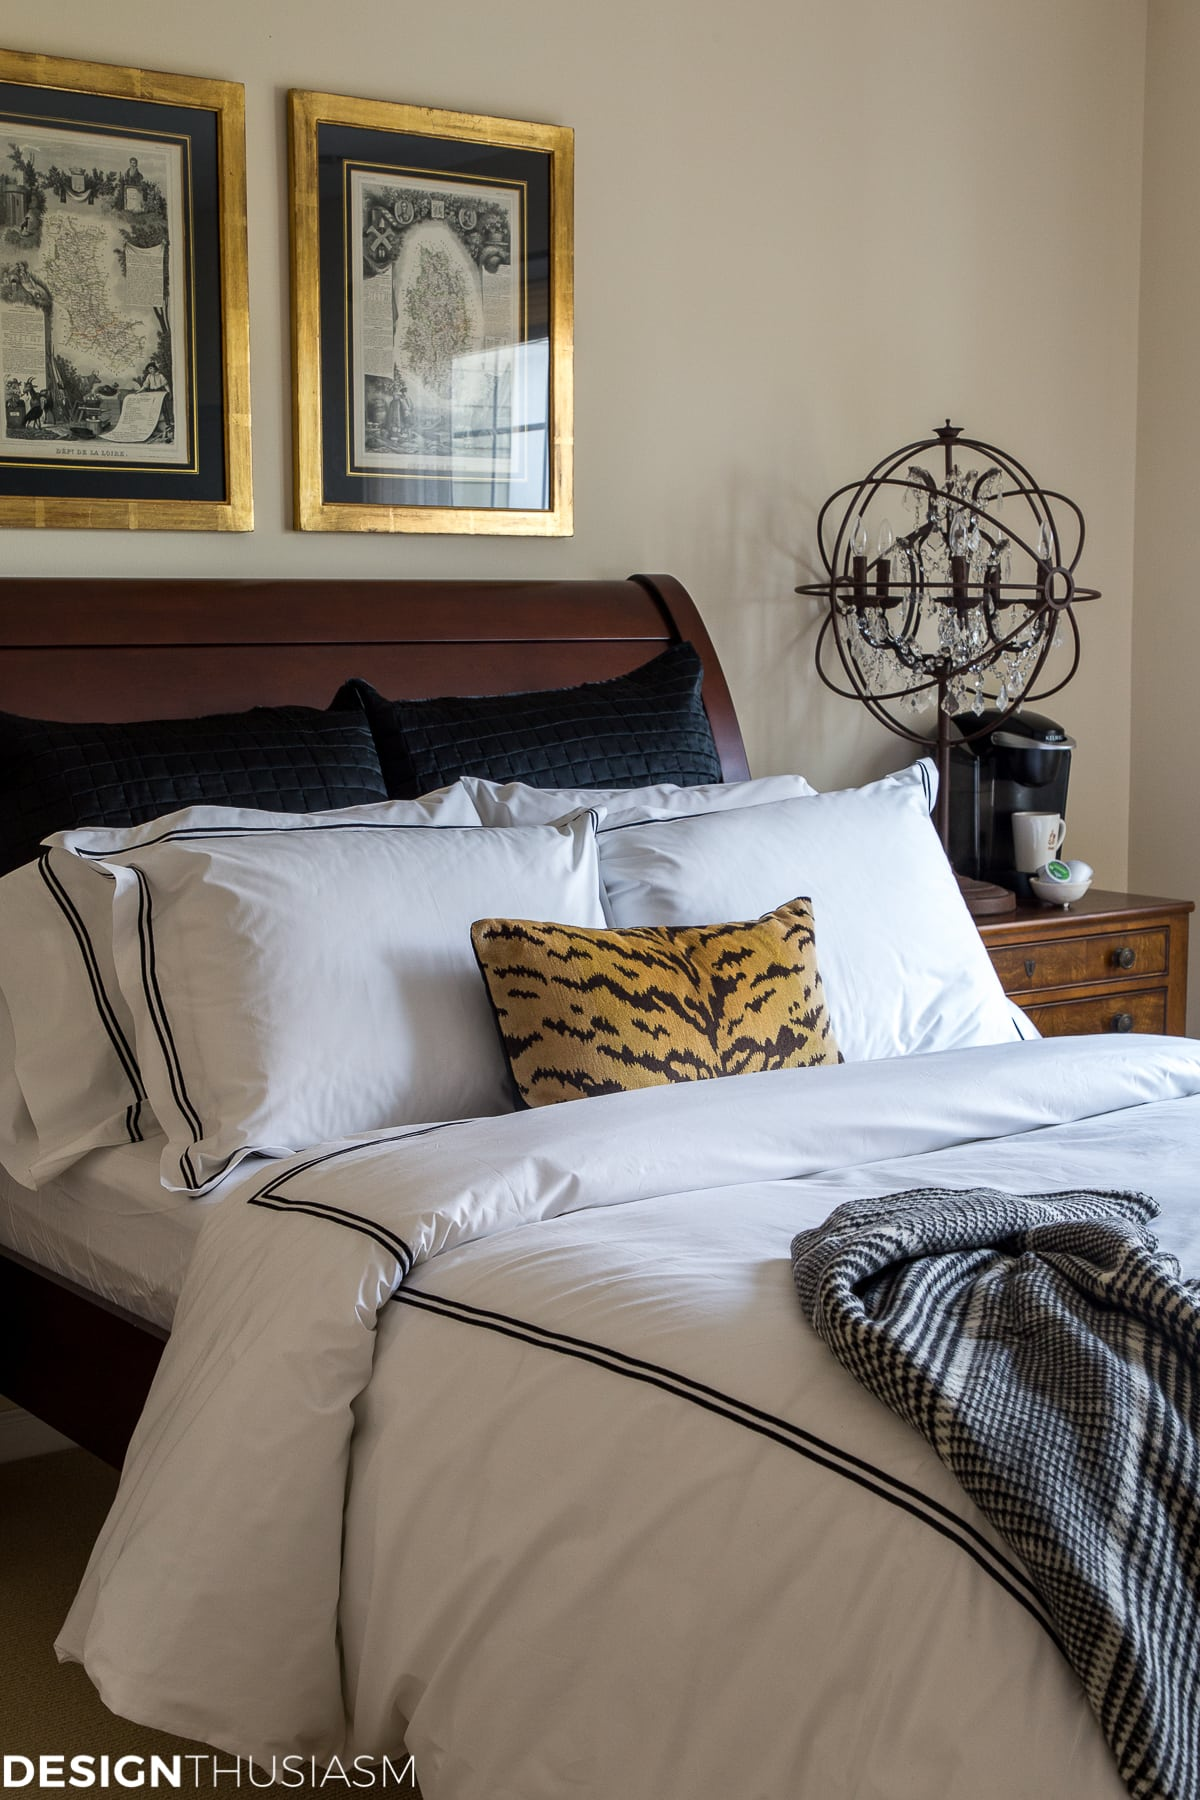 Guest Room Ideas: How to Add a Touch of Luxury for Your Guests